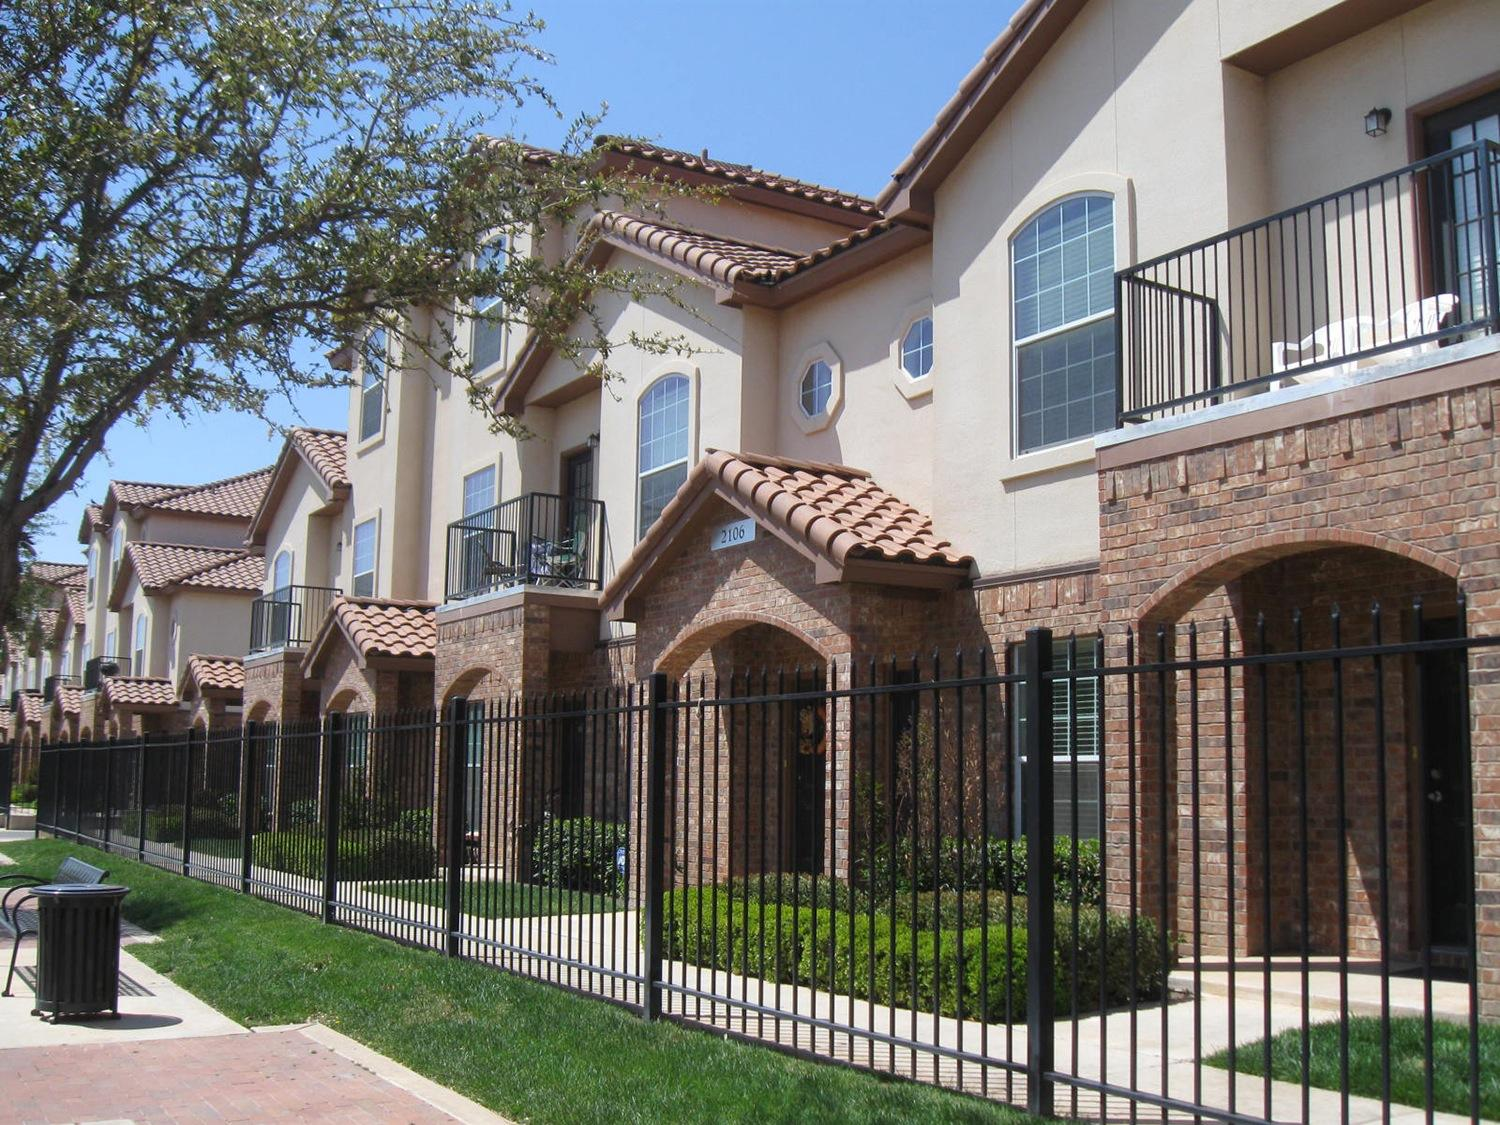 Condos in North Overton near Texas Tech